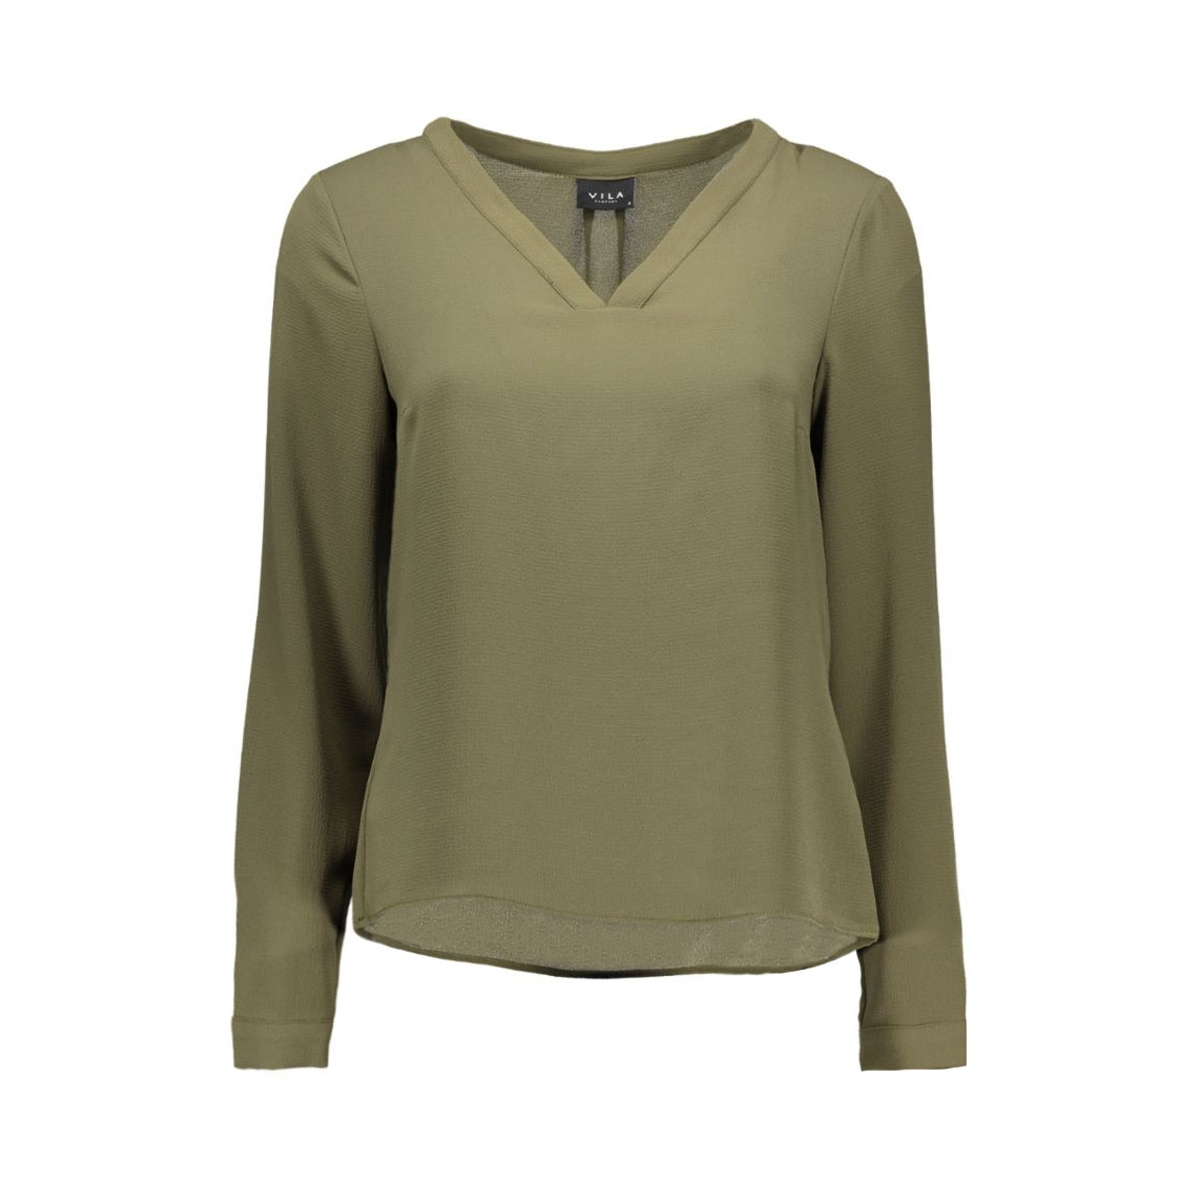 viremember l/s top-noos 14036047 vila blouse ivy green